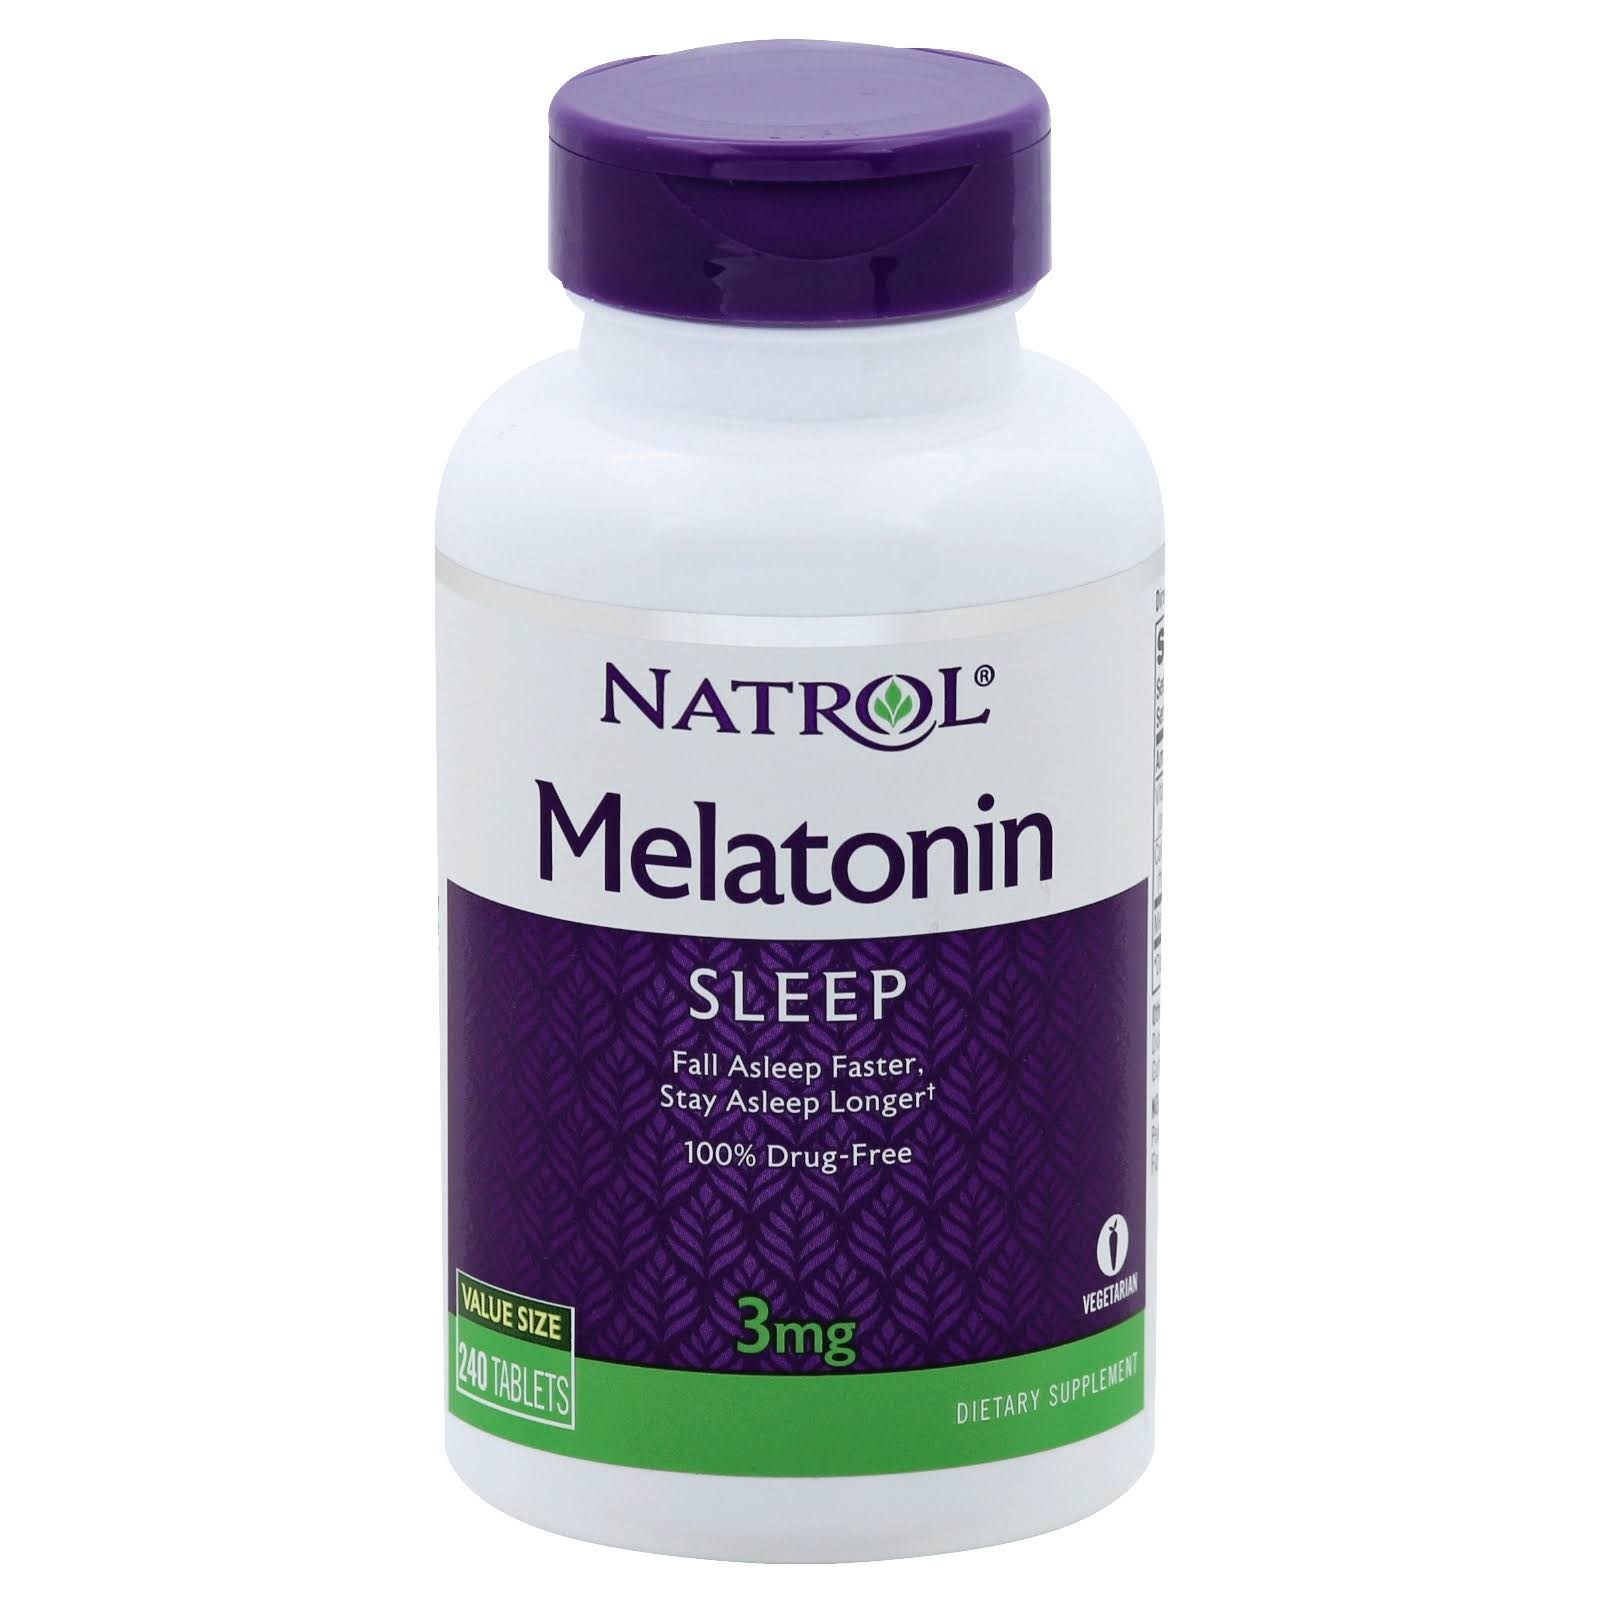 Natrol Melatonin Dietary Supplement - 3mg, 240ct